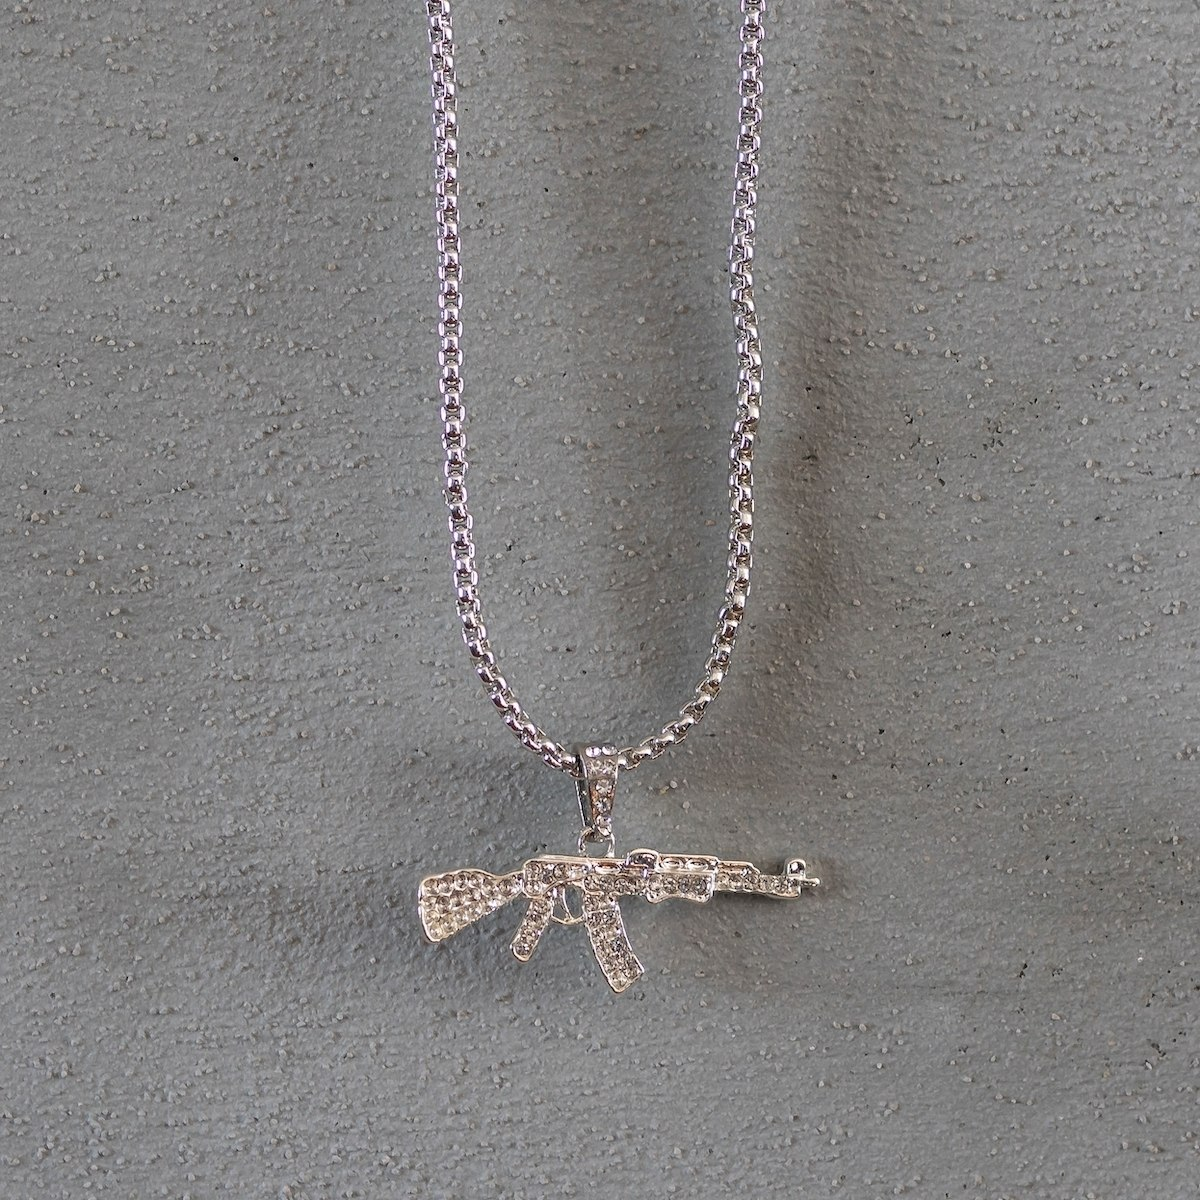 Men's AK-47 Necklace Silver